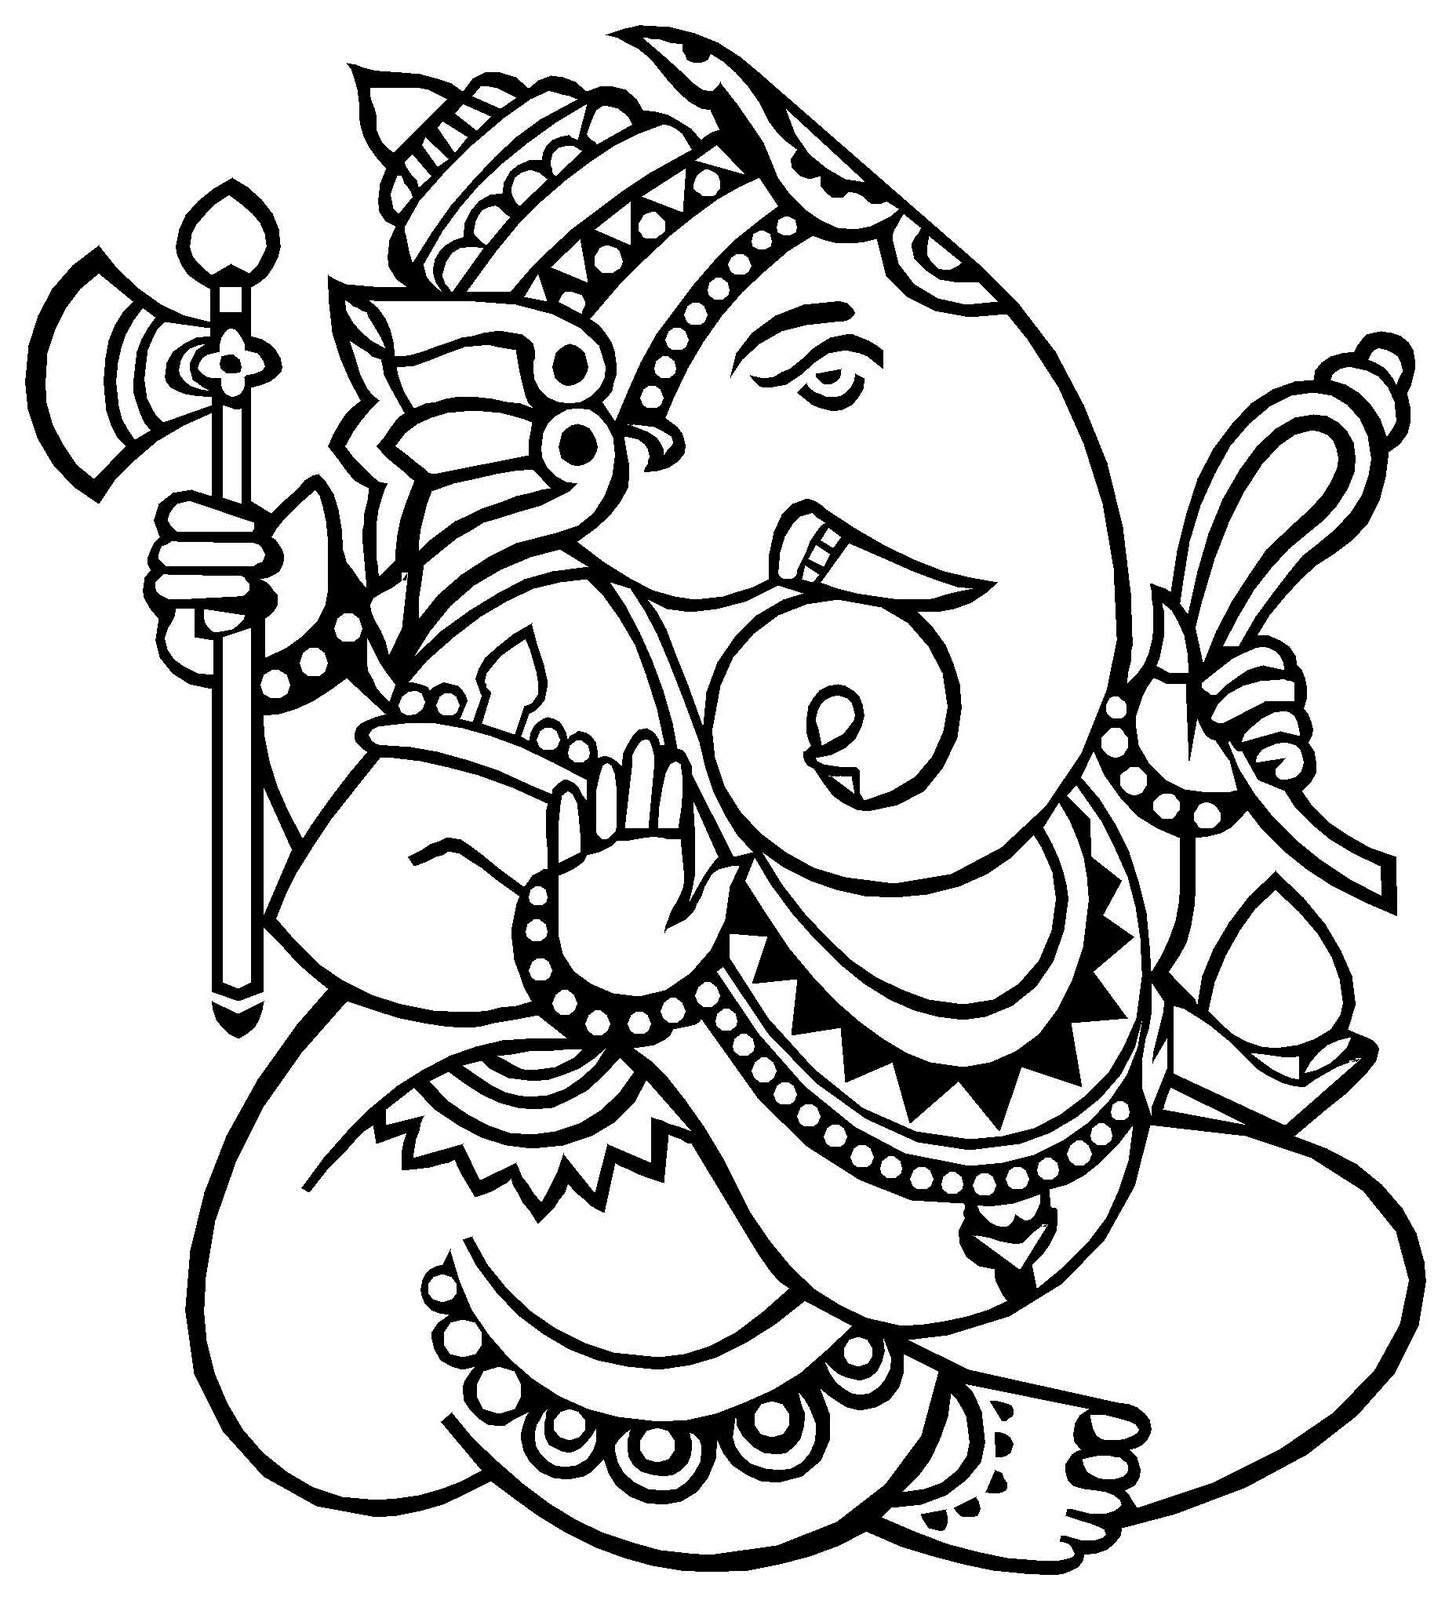 Line Drawing Your Photo : Ganesh line drawing at getdrawings free for personal